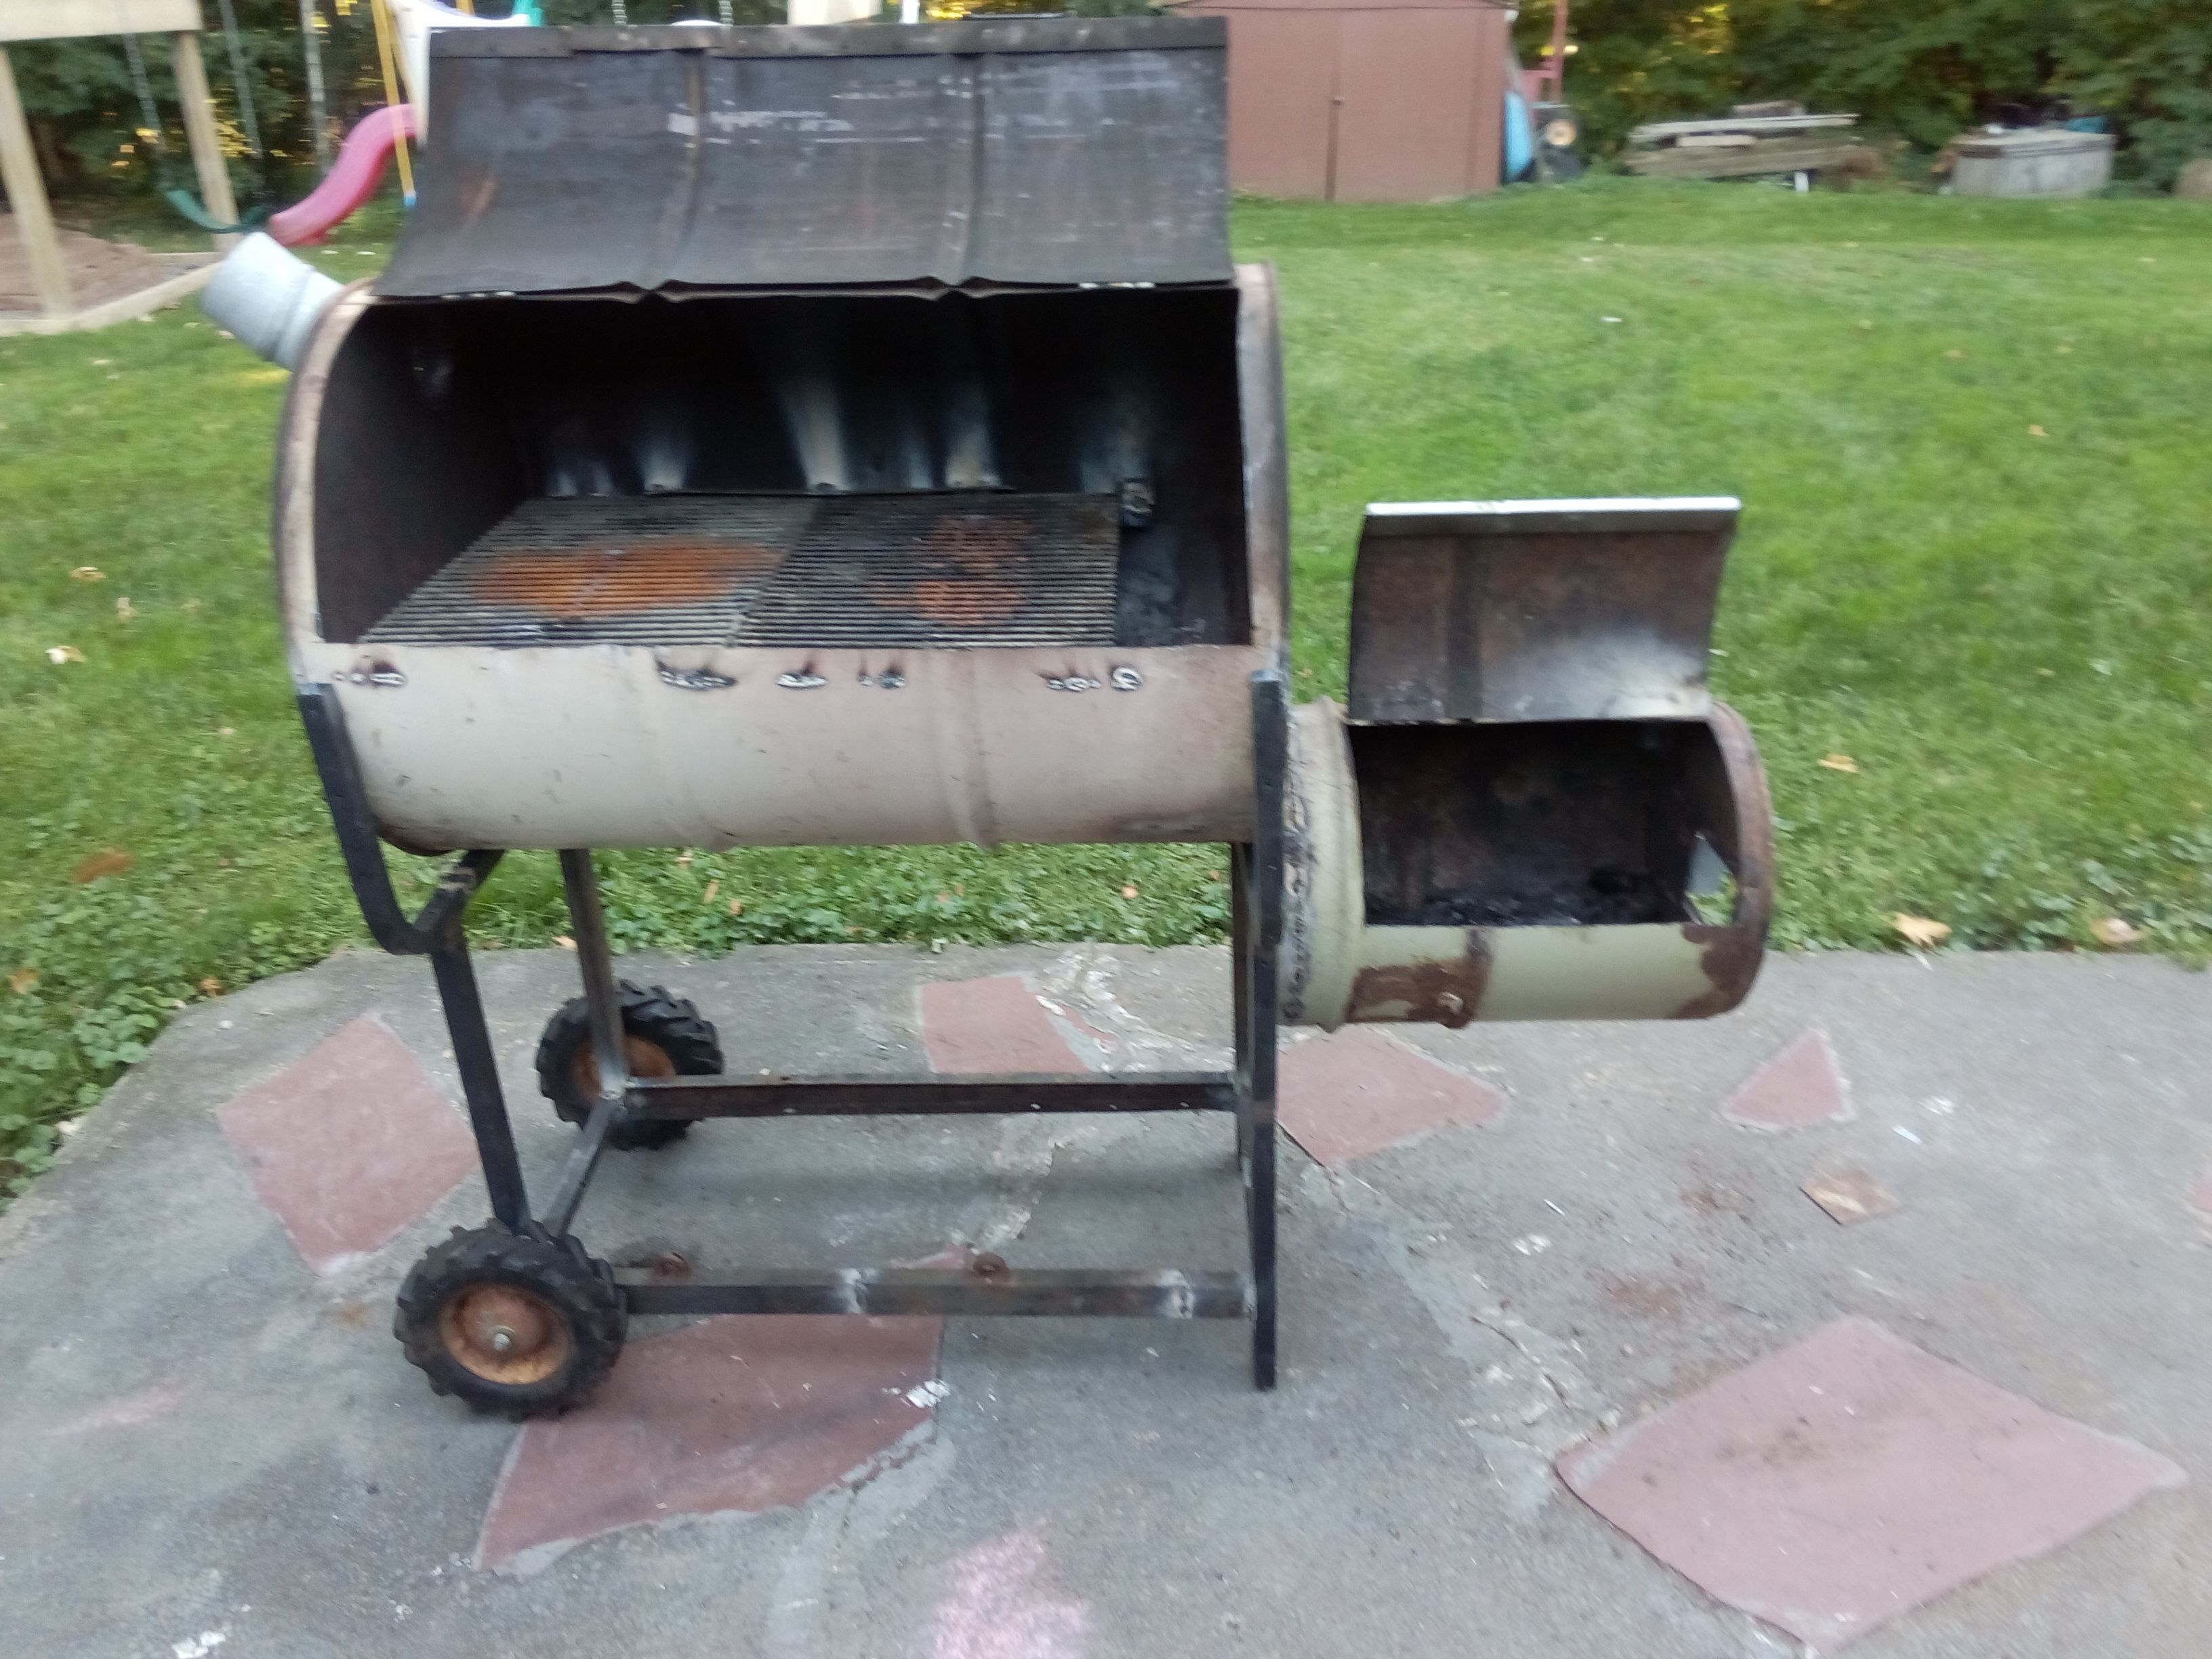 WIP fset smoker grill from 55 gallon drum drum from old central